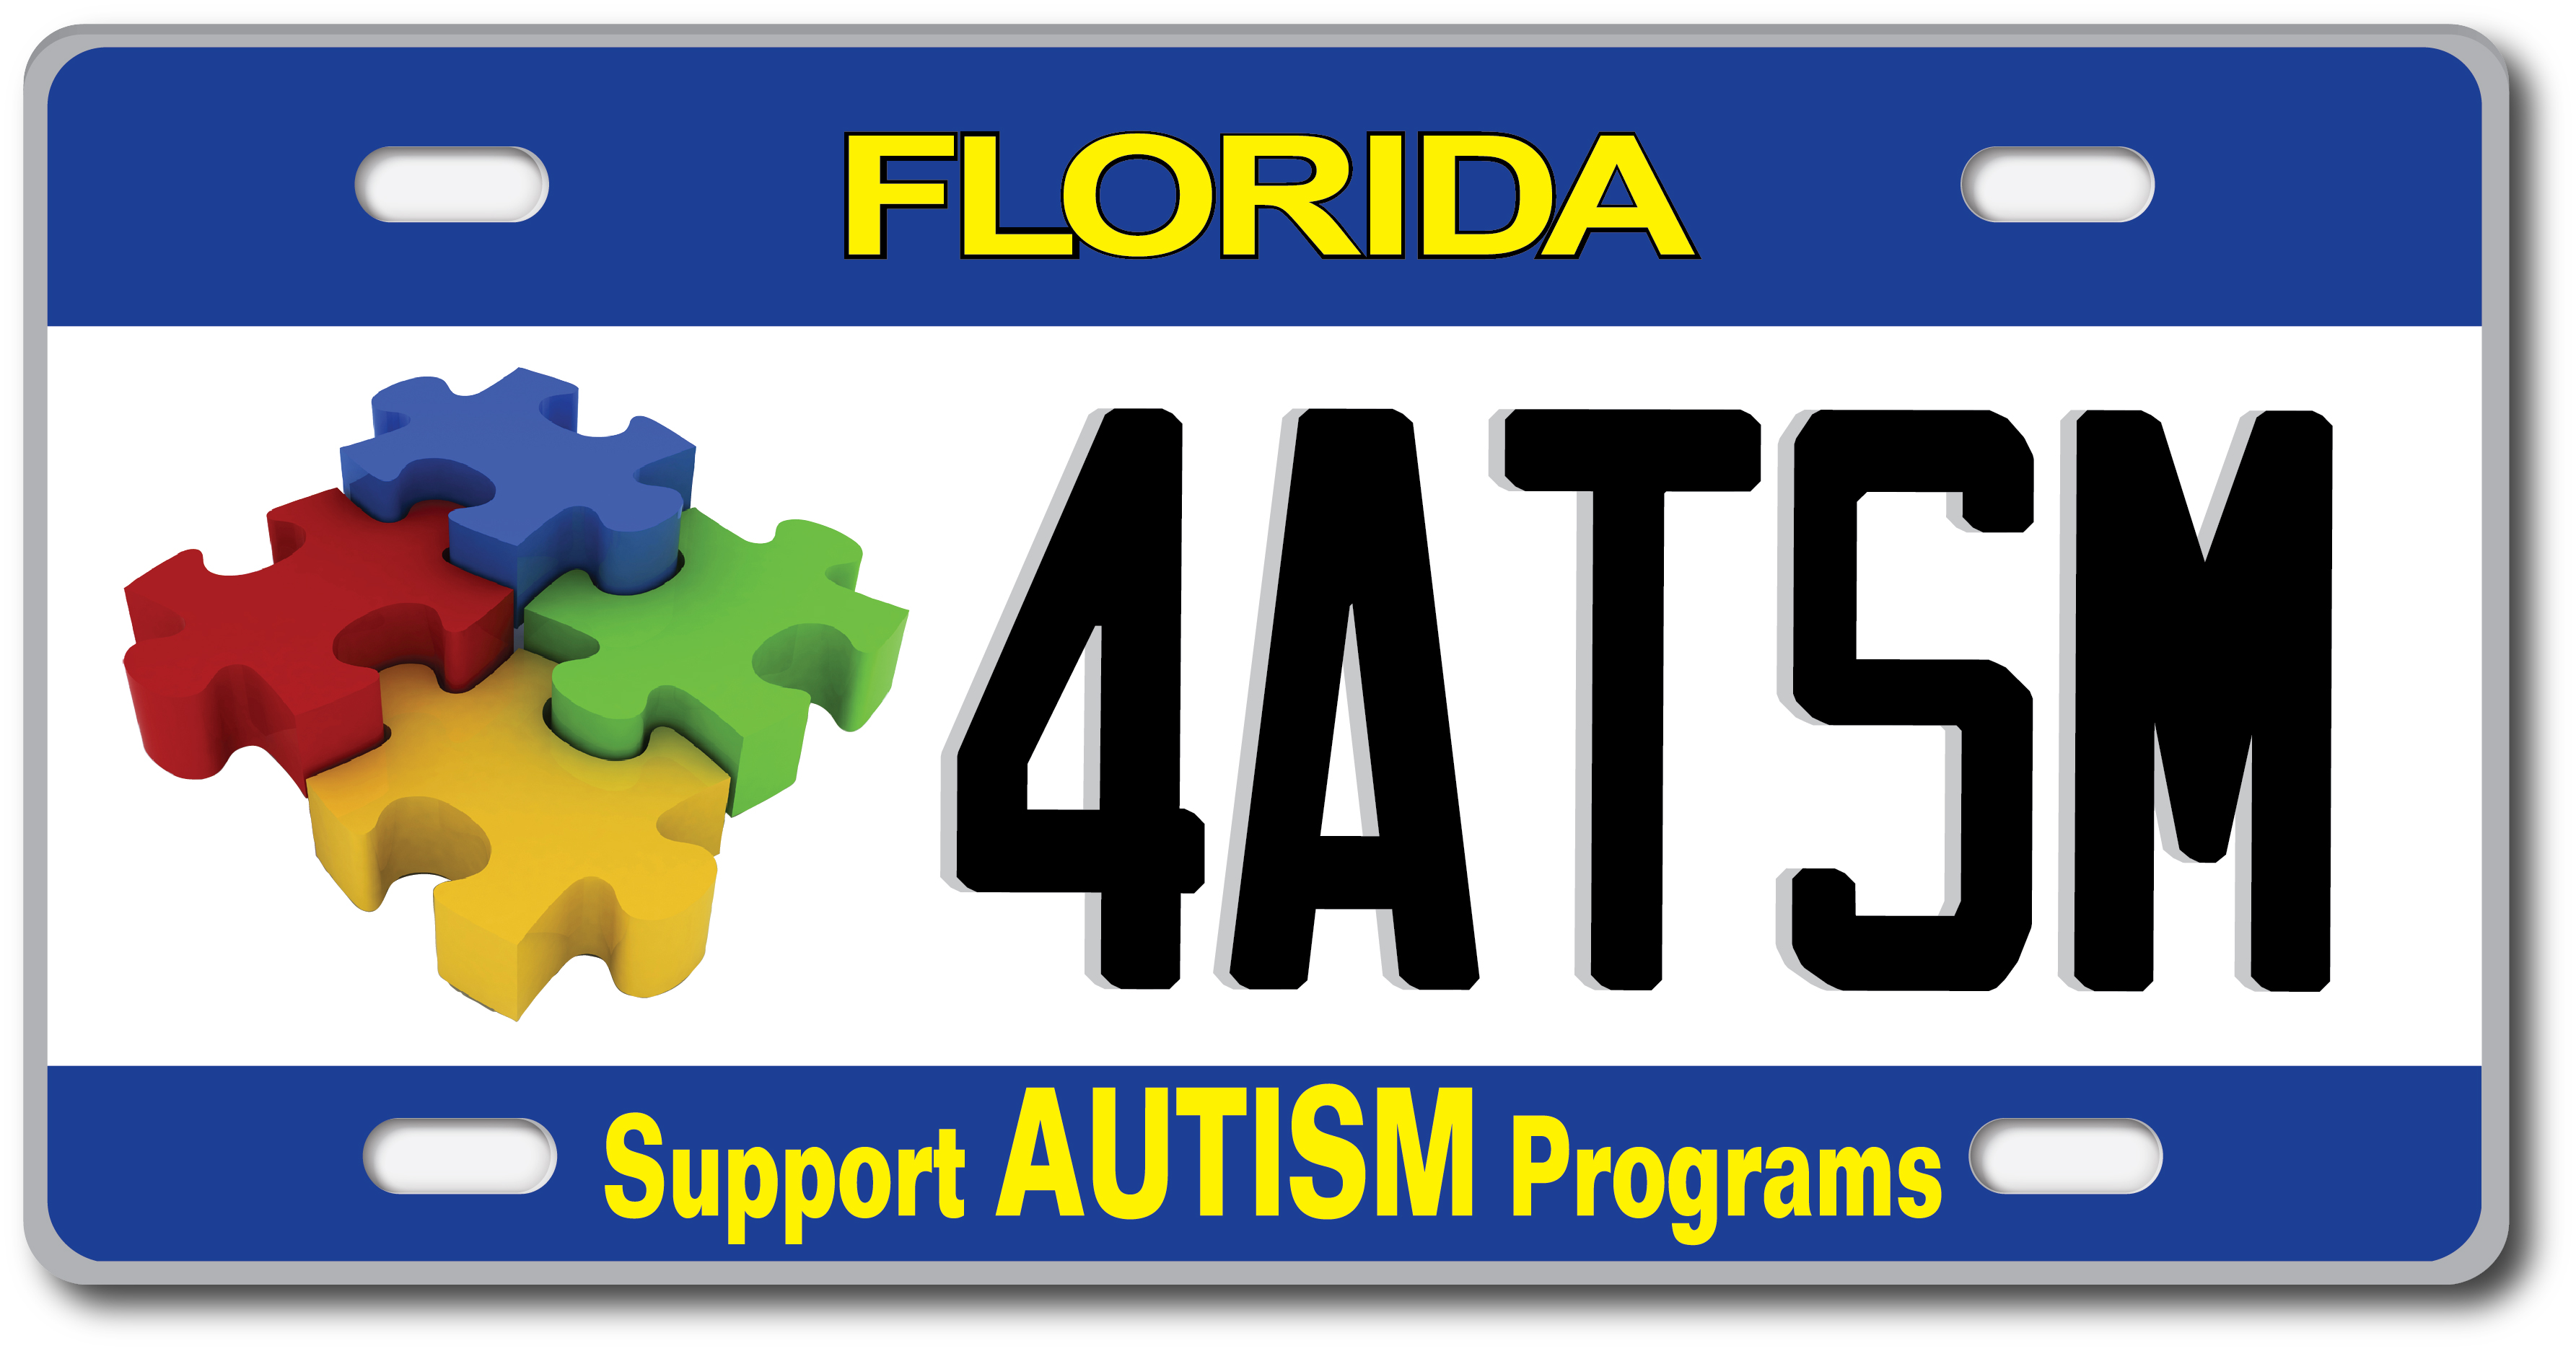 Support Autism Services By Purchasing A Specialty License Plate